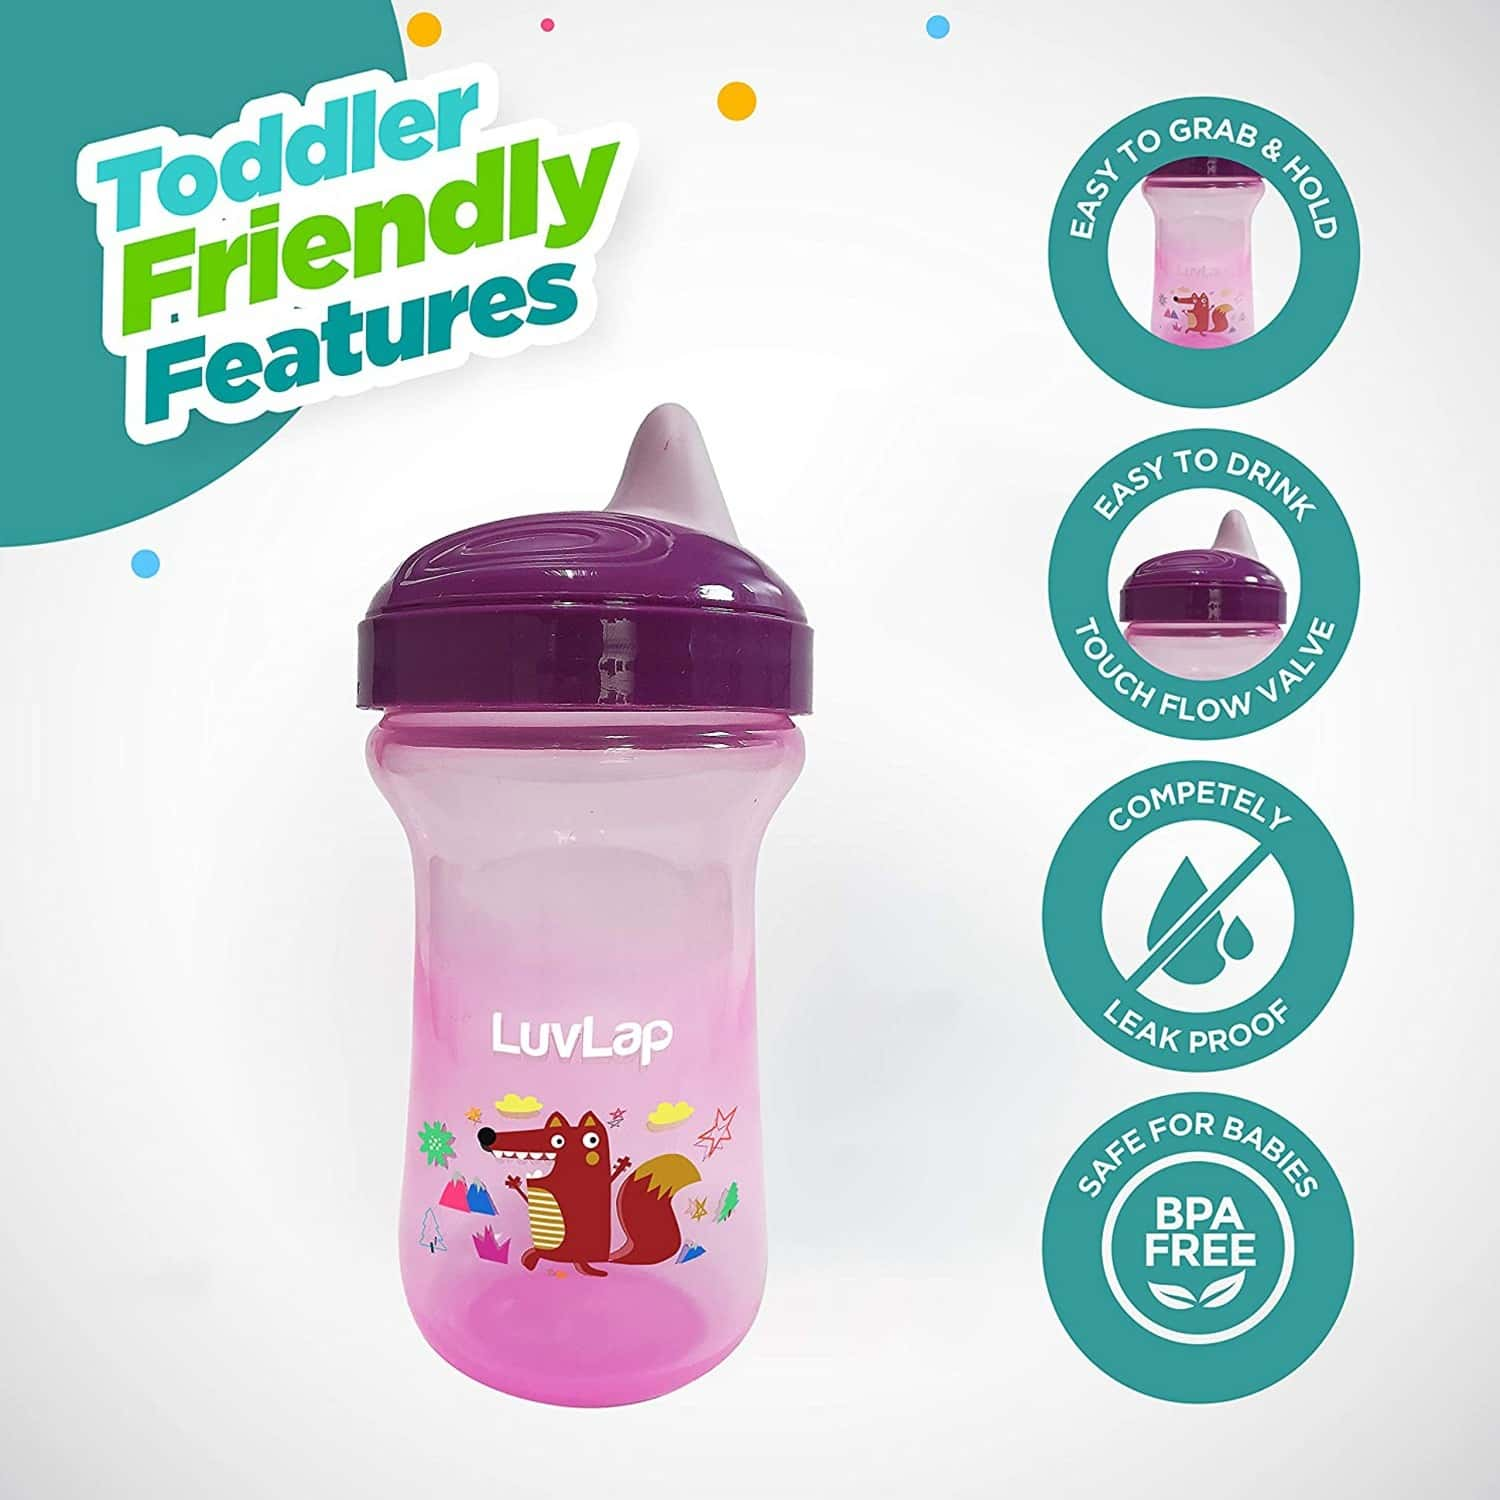 Luvlap Little Fox Sipper/sippy Cup 300ml, Anti-spill Design With Easy Sip Spout, 6m+ (pink)